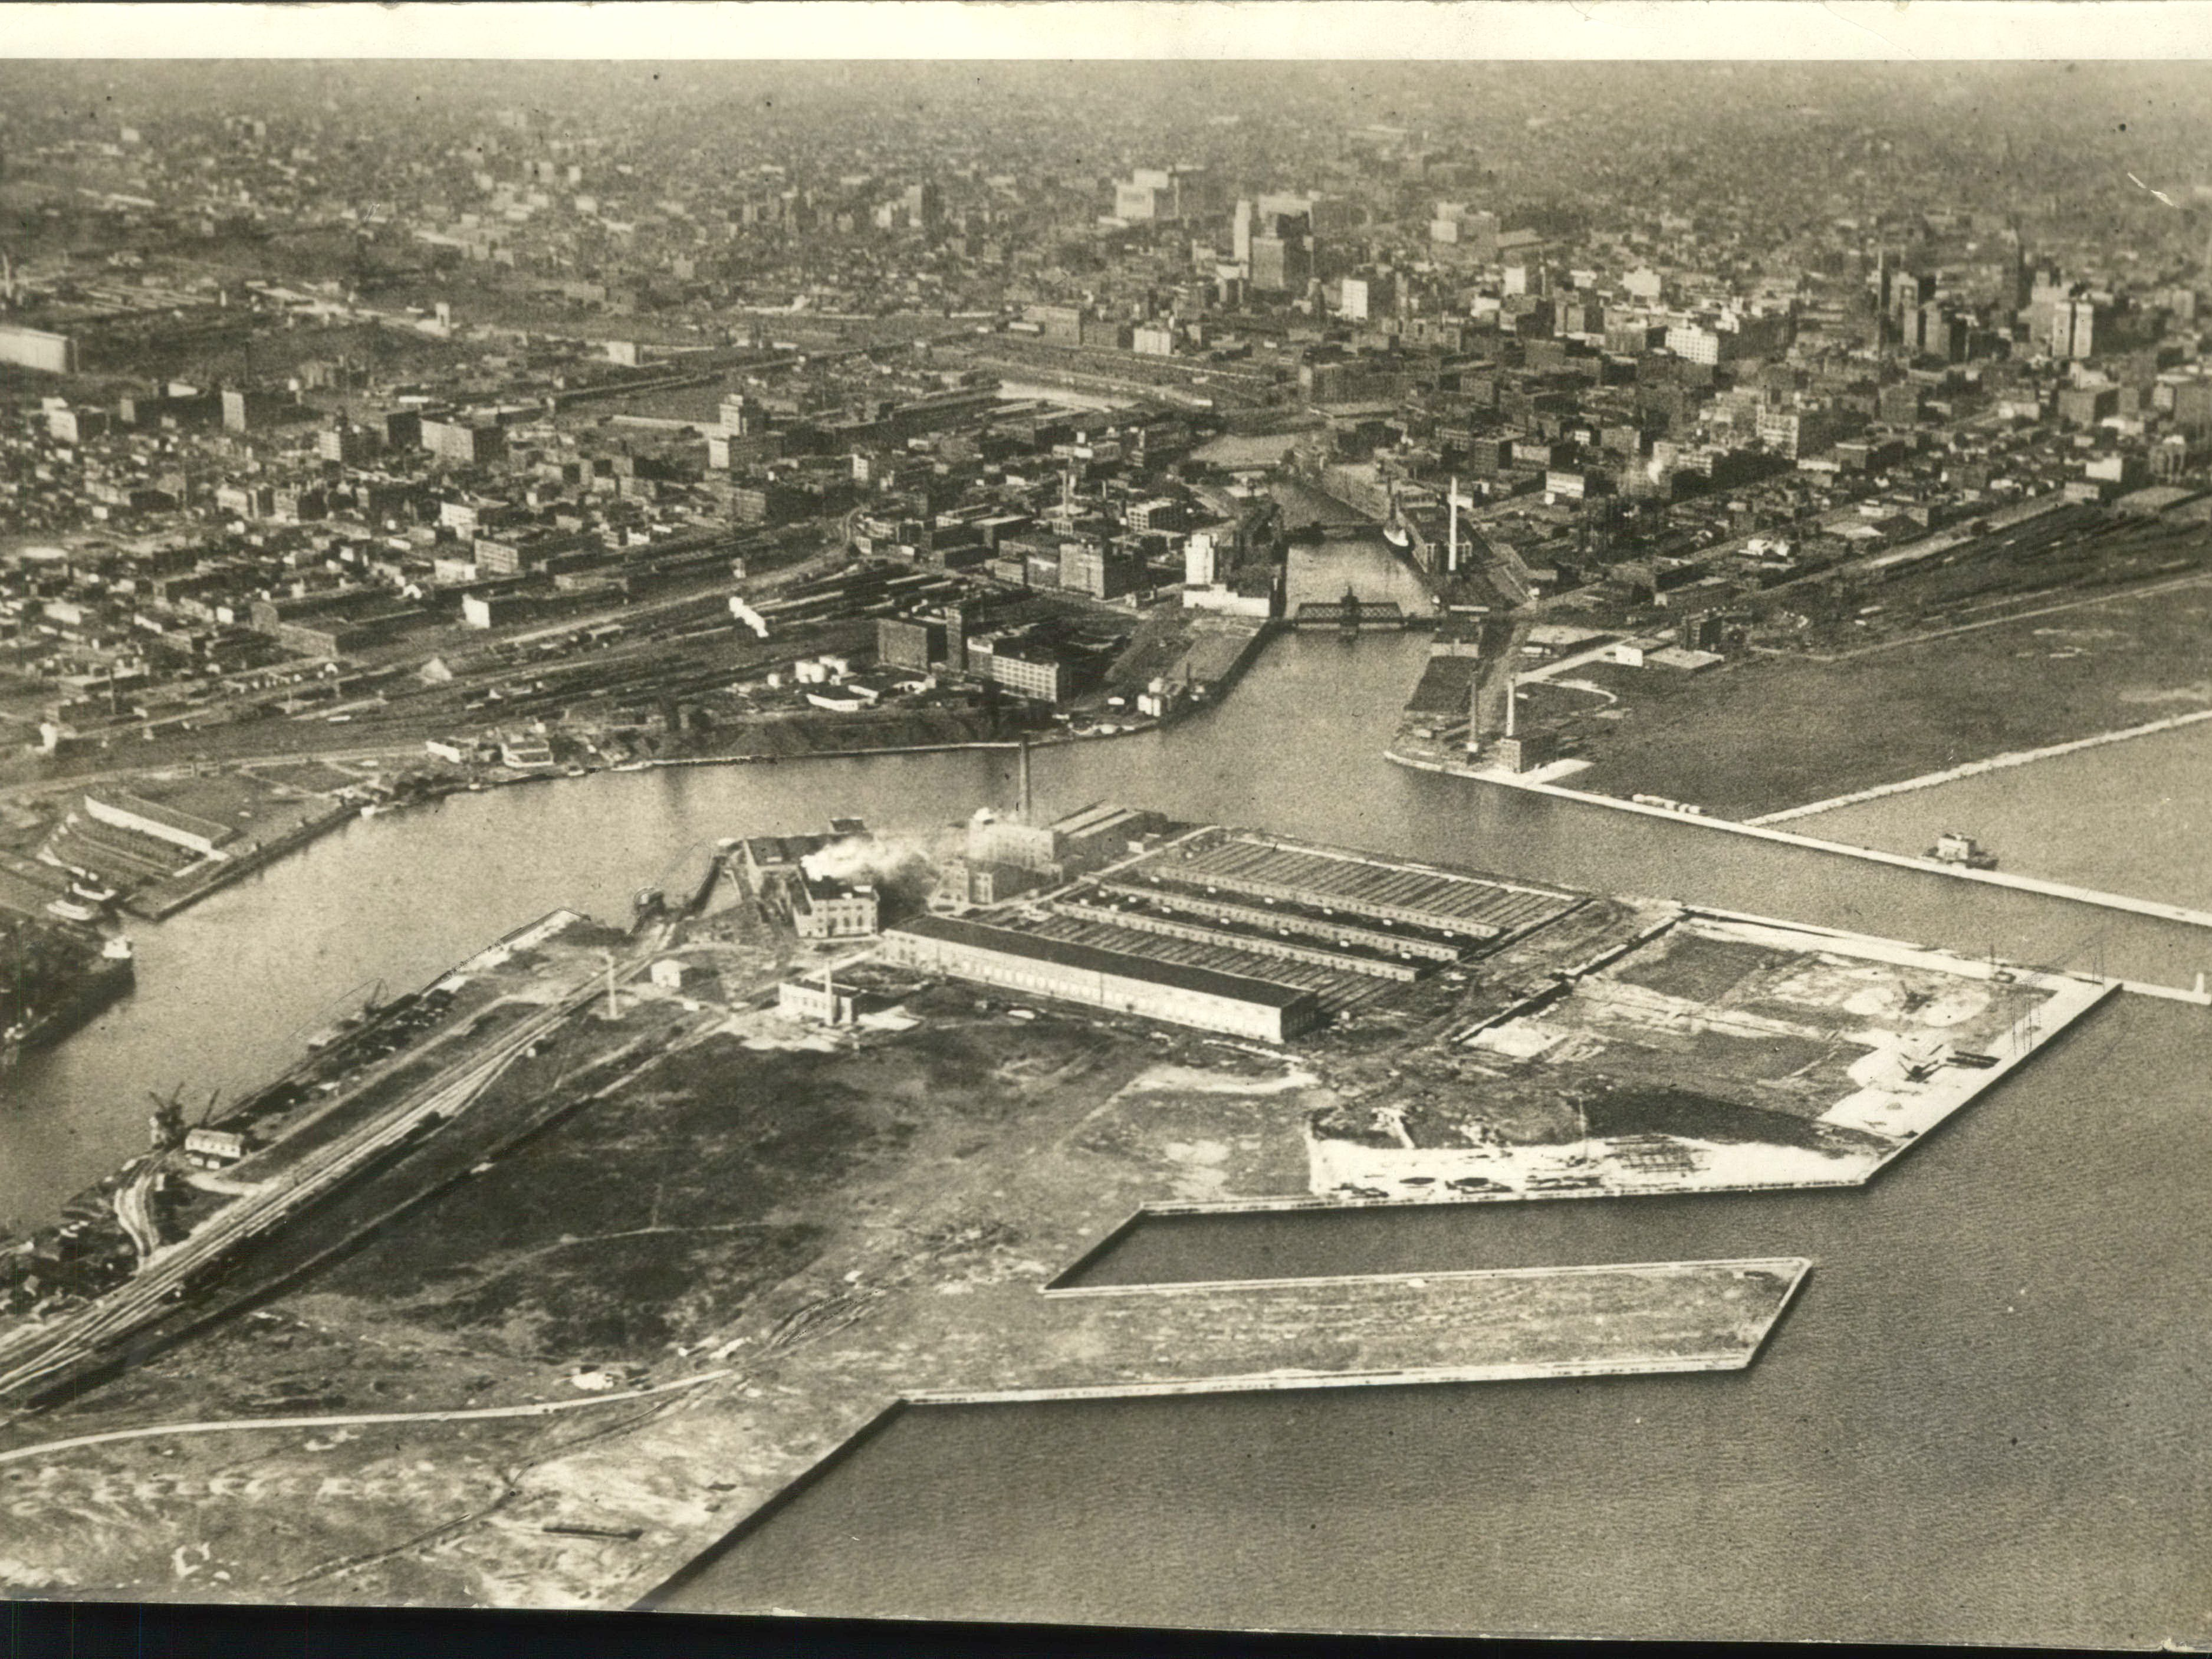 Milwaukee's inner harbor entrance and the municipal development on Jones Island are shown in this picture. In the center at the north end of the sewage disposal plant with land provided for its future extension eastward. In the foreground at the center is pier number 1of the municipal harbor. To the left, along the inner side of the island are the open municipal dock terminal and carferry slips. Picture taken from Mid-west Airways plane. (Air Views)